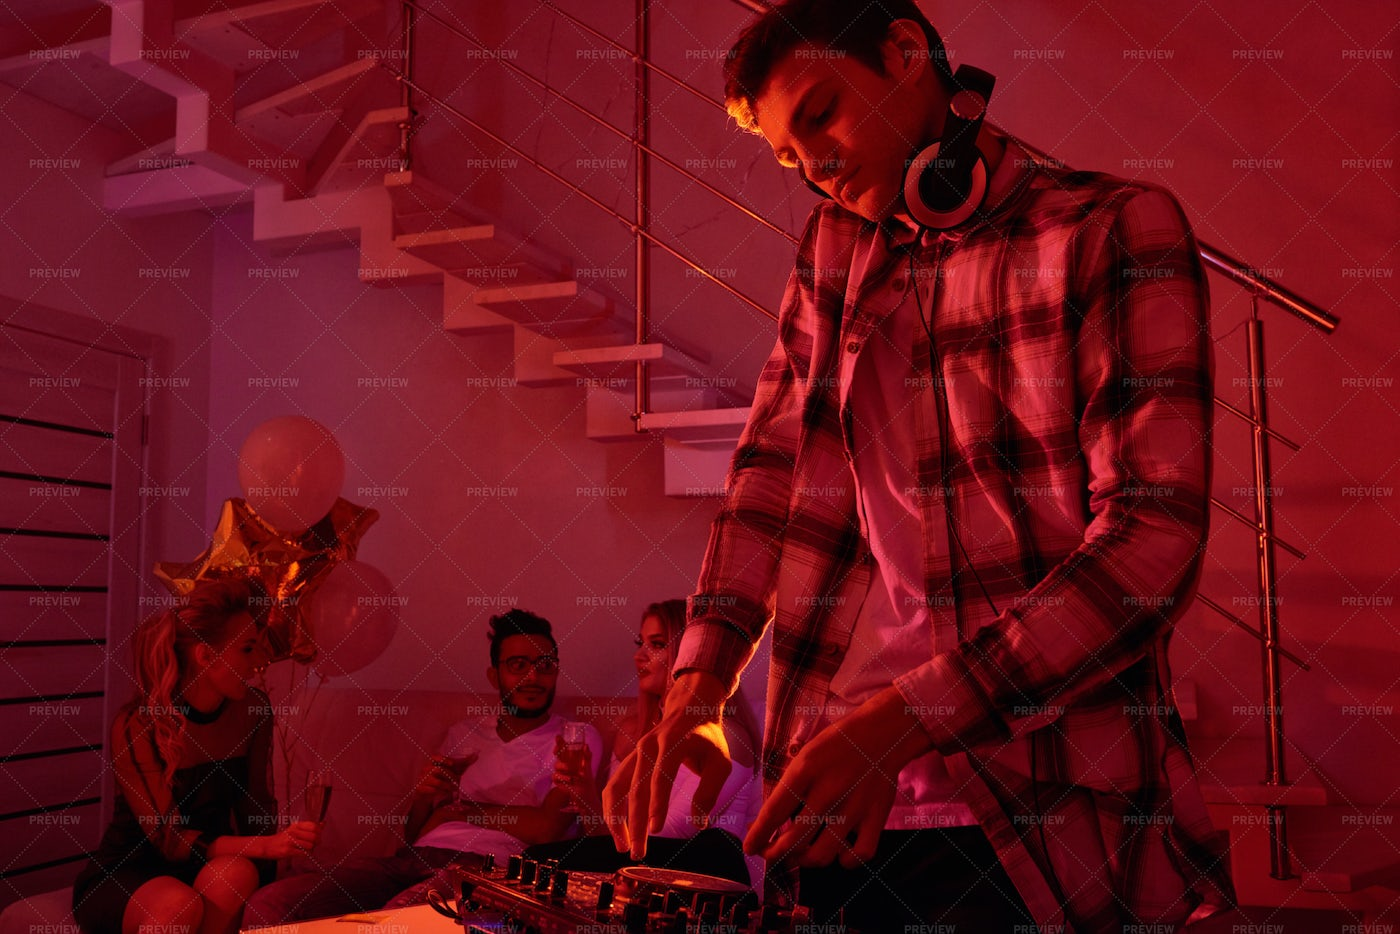 Man Mixing Music On Christmas Party: Stock Photos